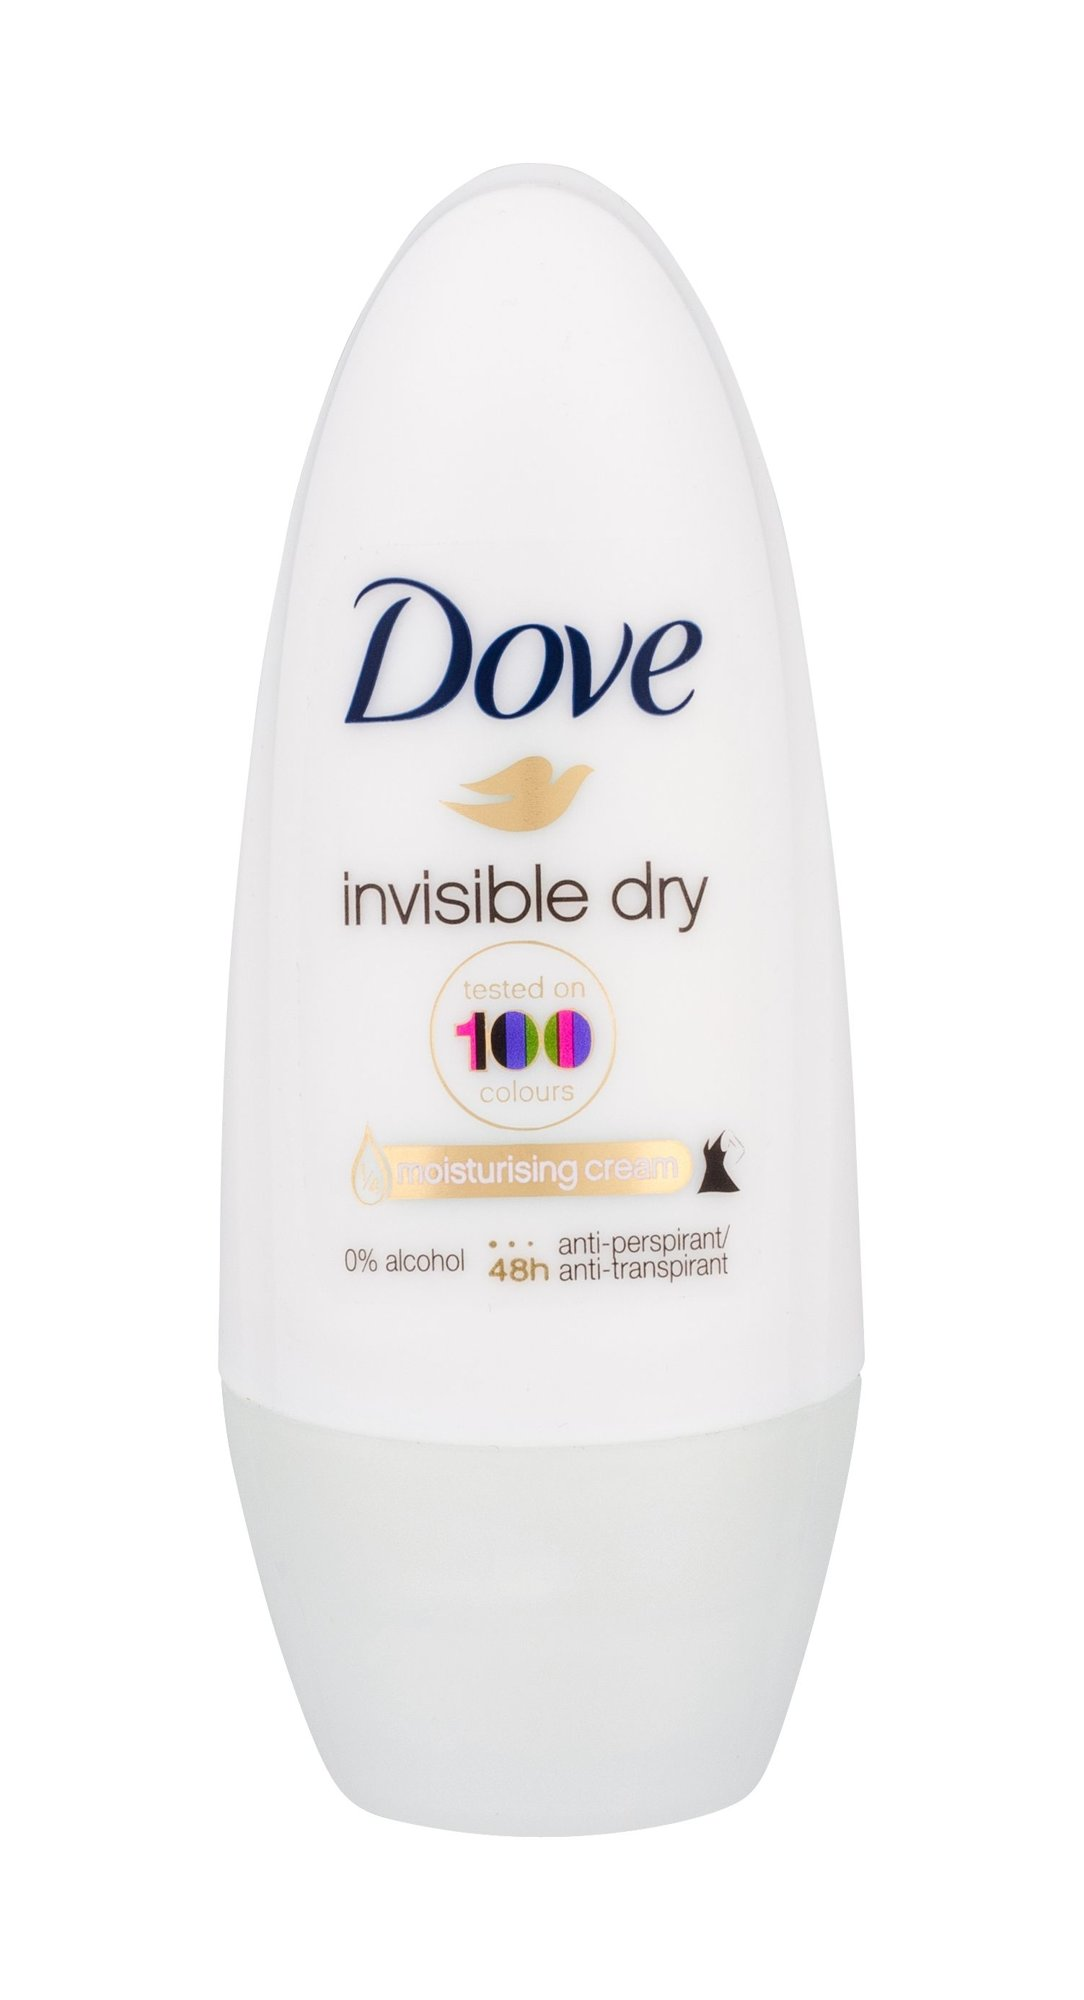 Dove Invisible Dry Cosmetic 50ml